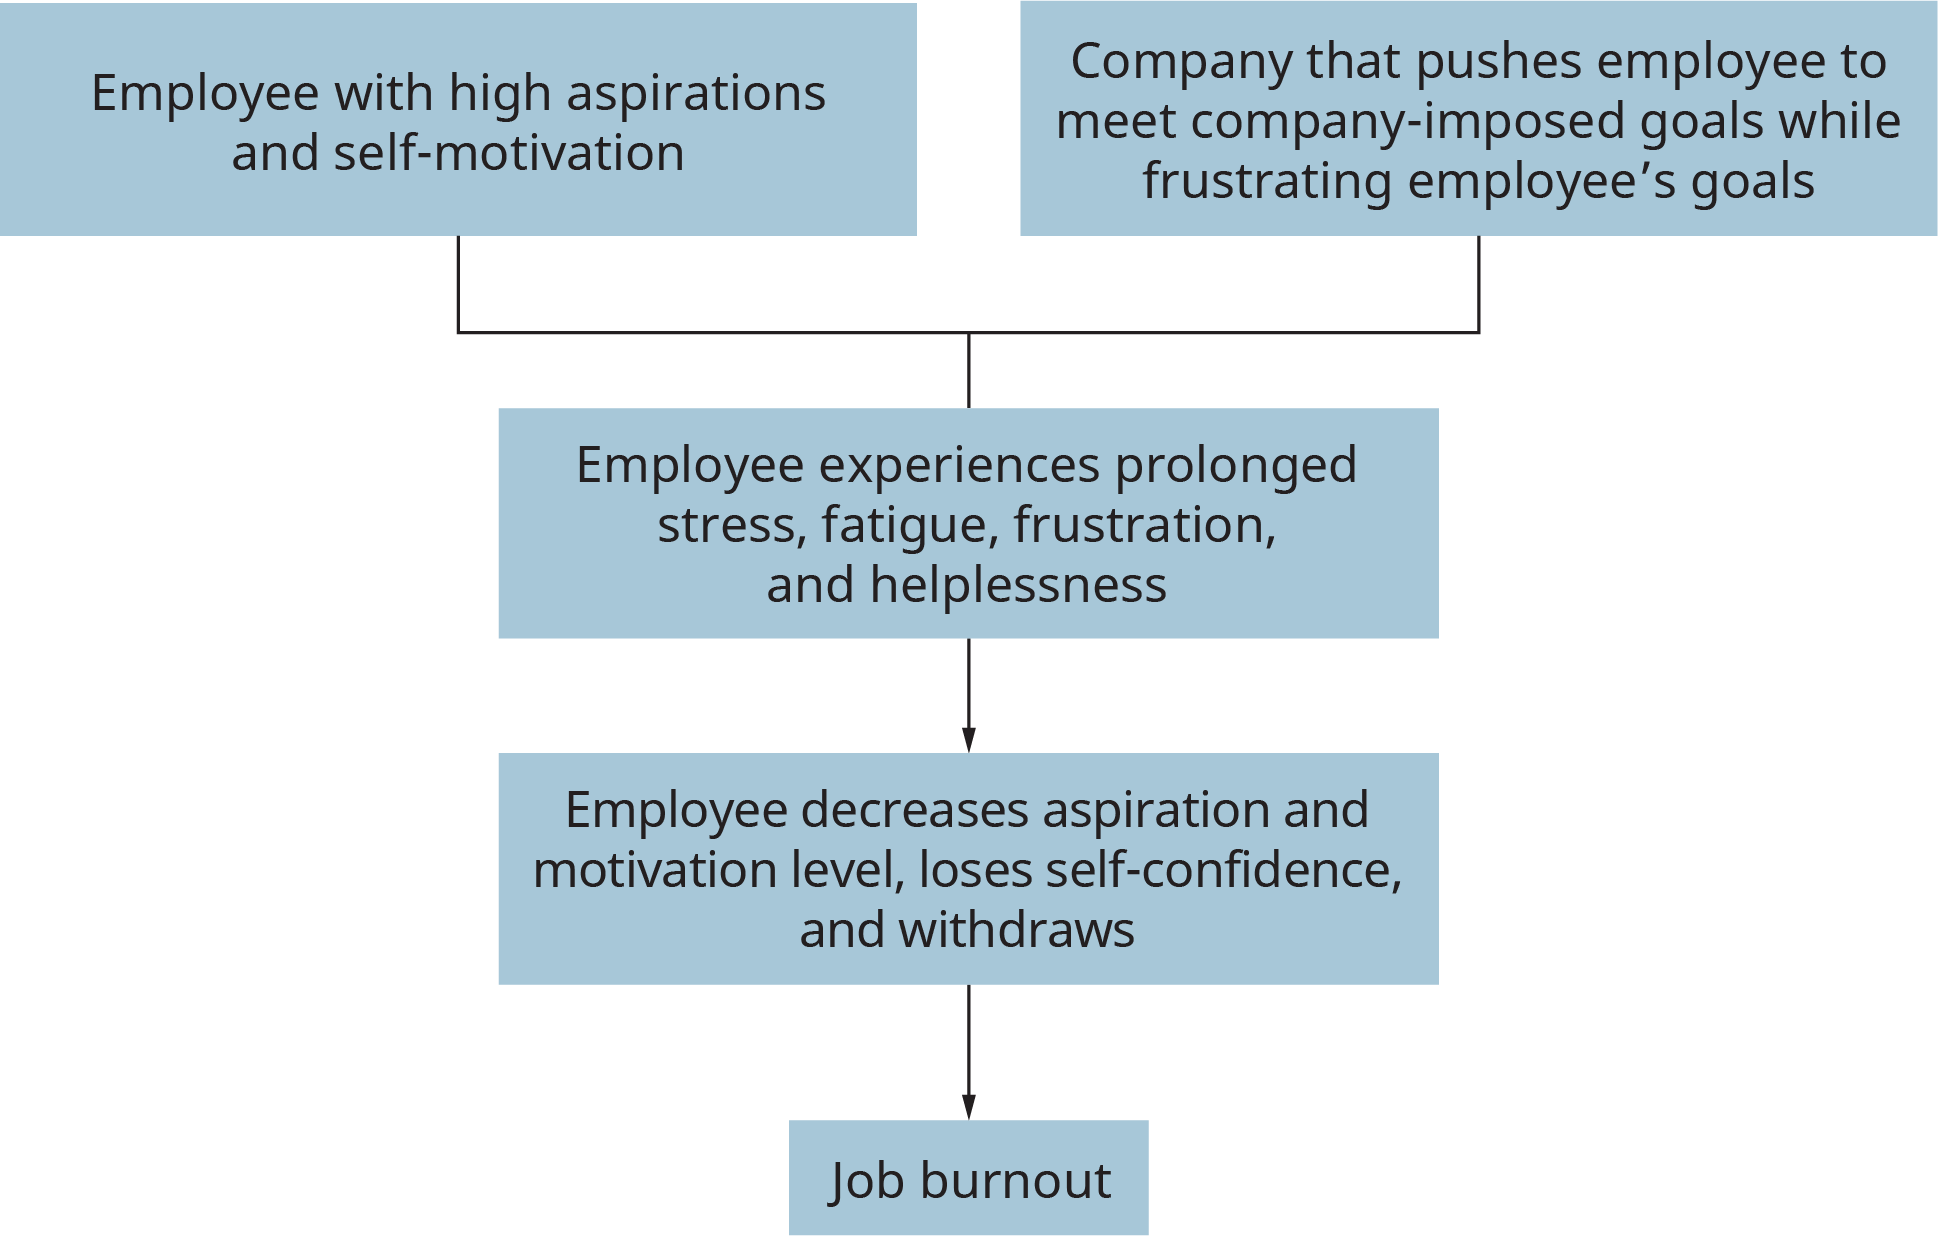 An illustration depicts the influences leading to job burnout.